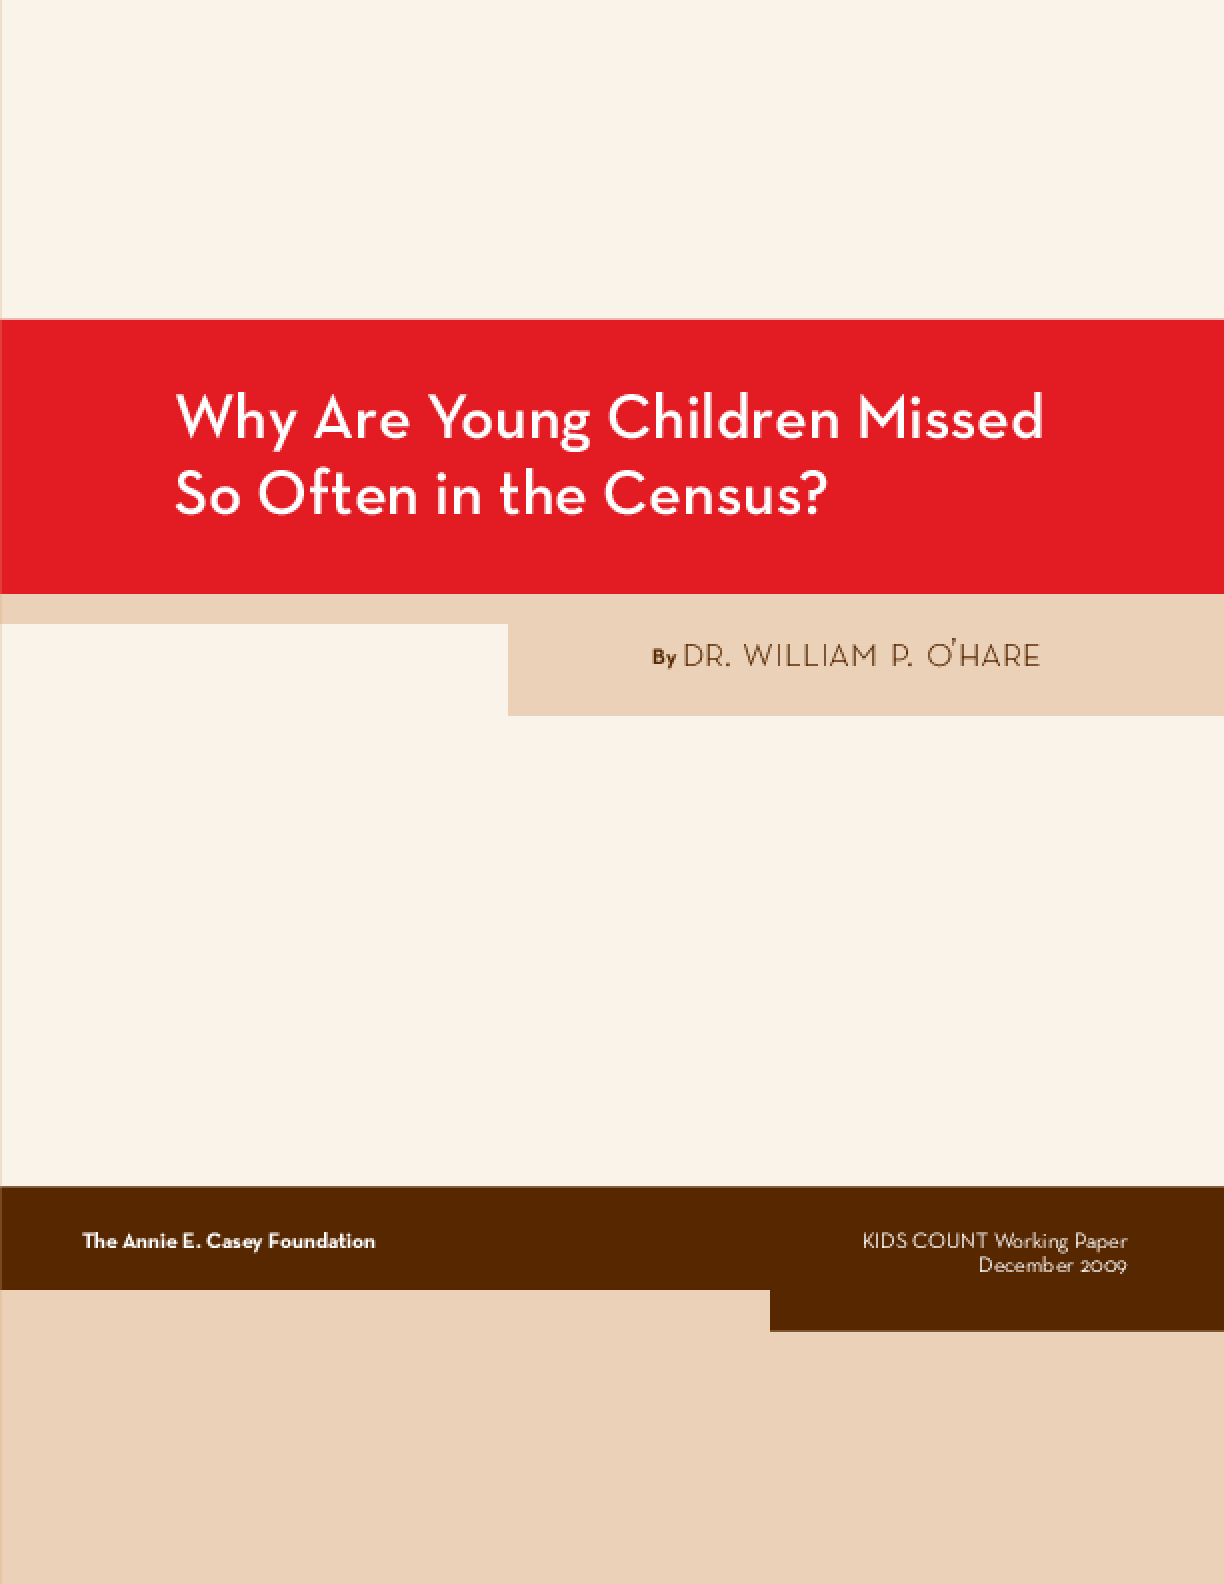 Why Are Young Children Missed So Often in the Census?